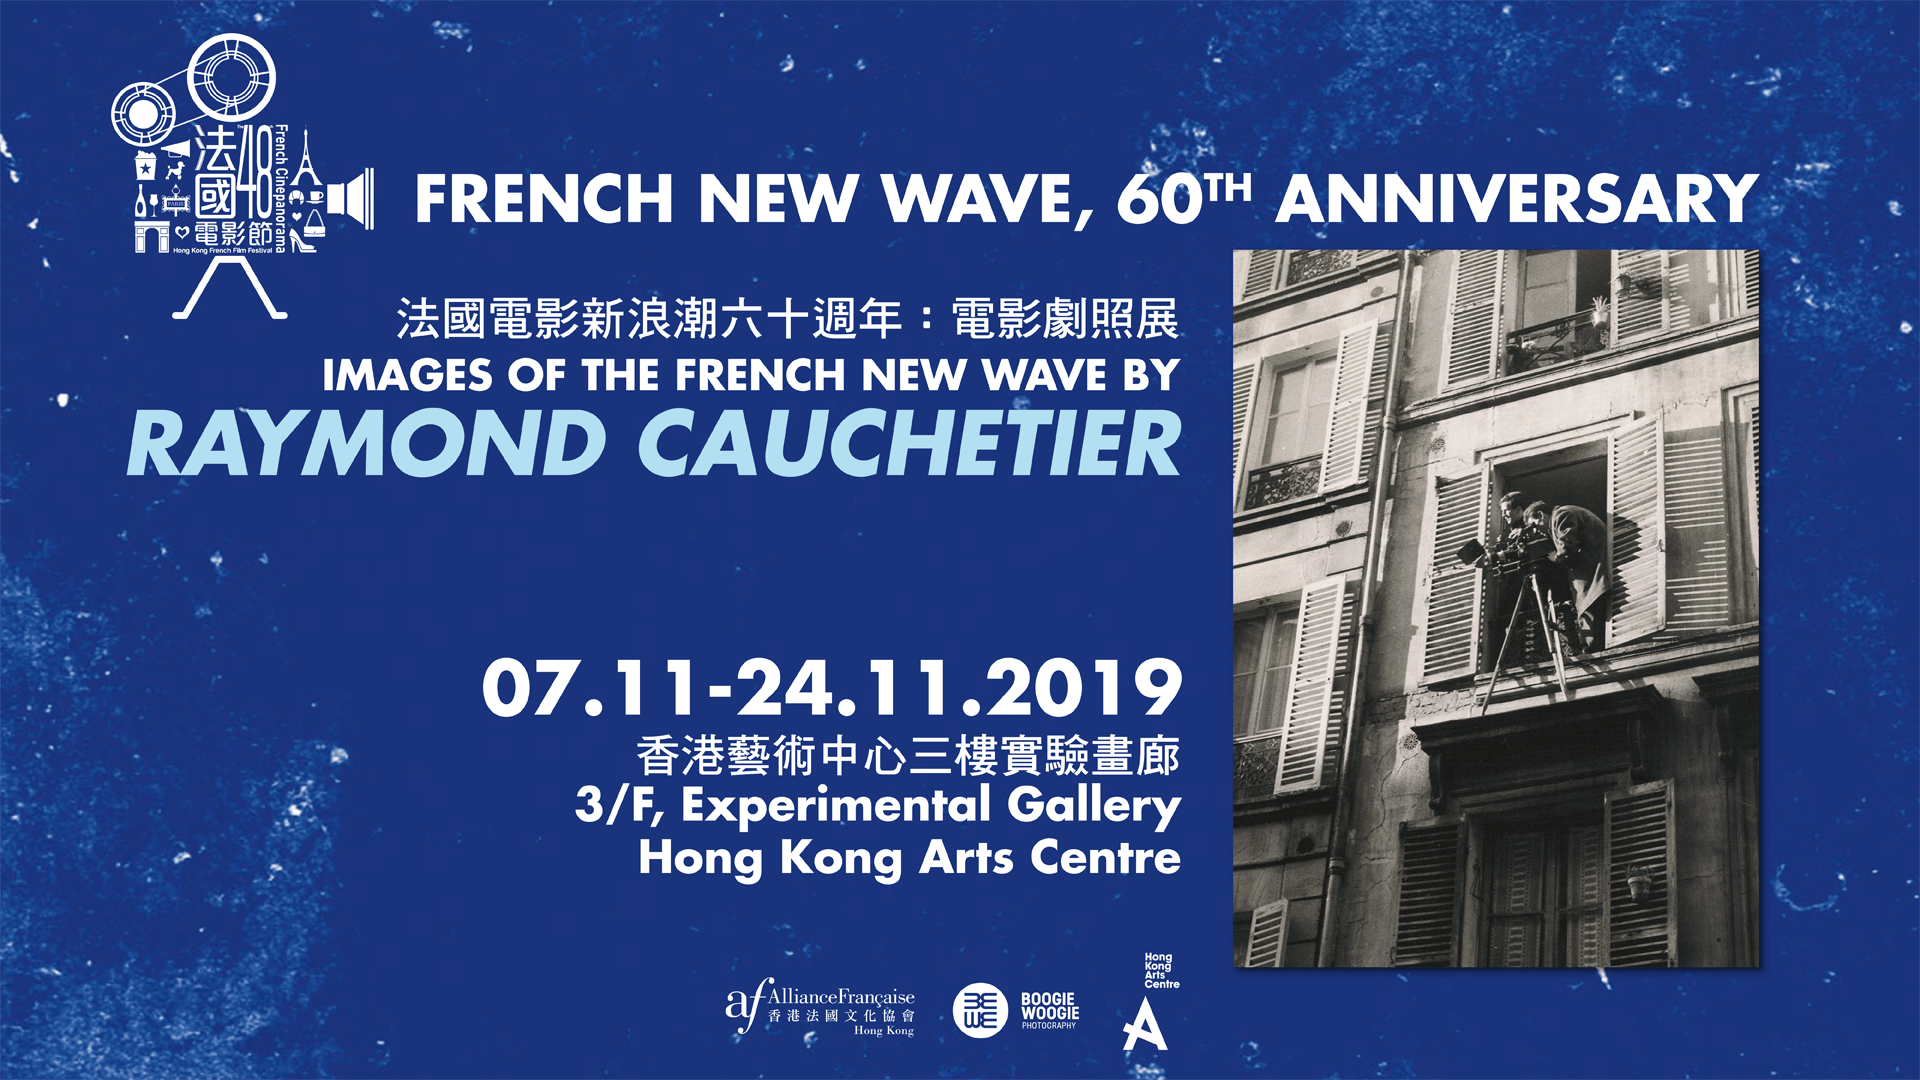 Photo Exhibition on the French New Wave